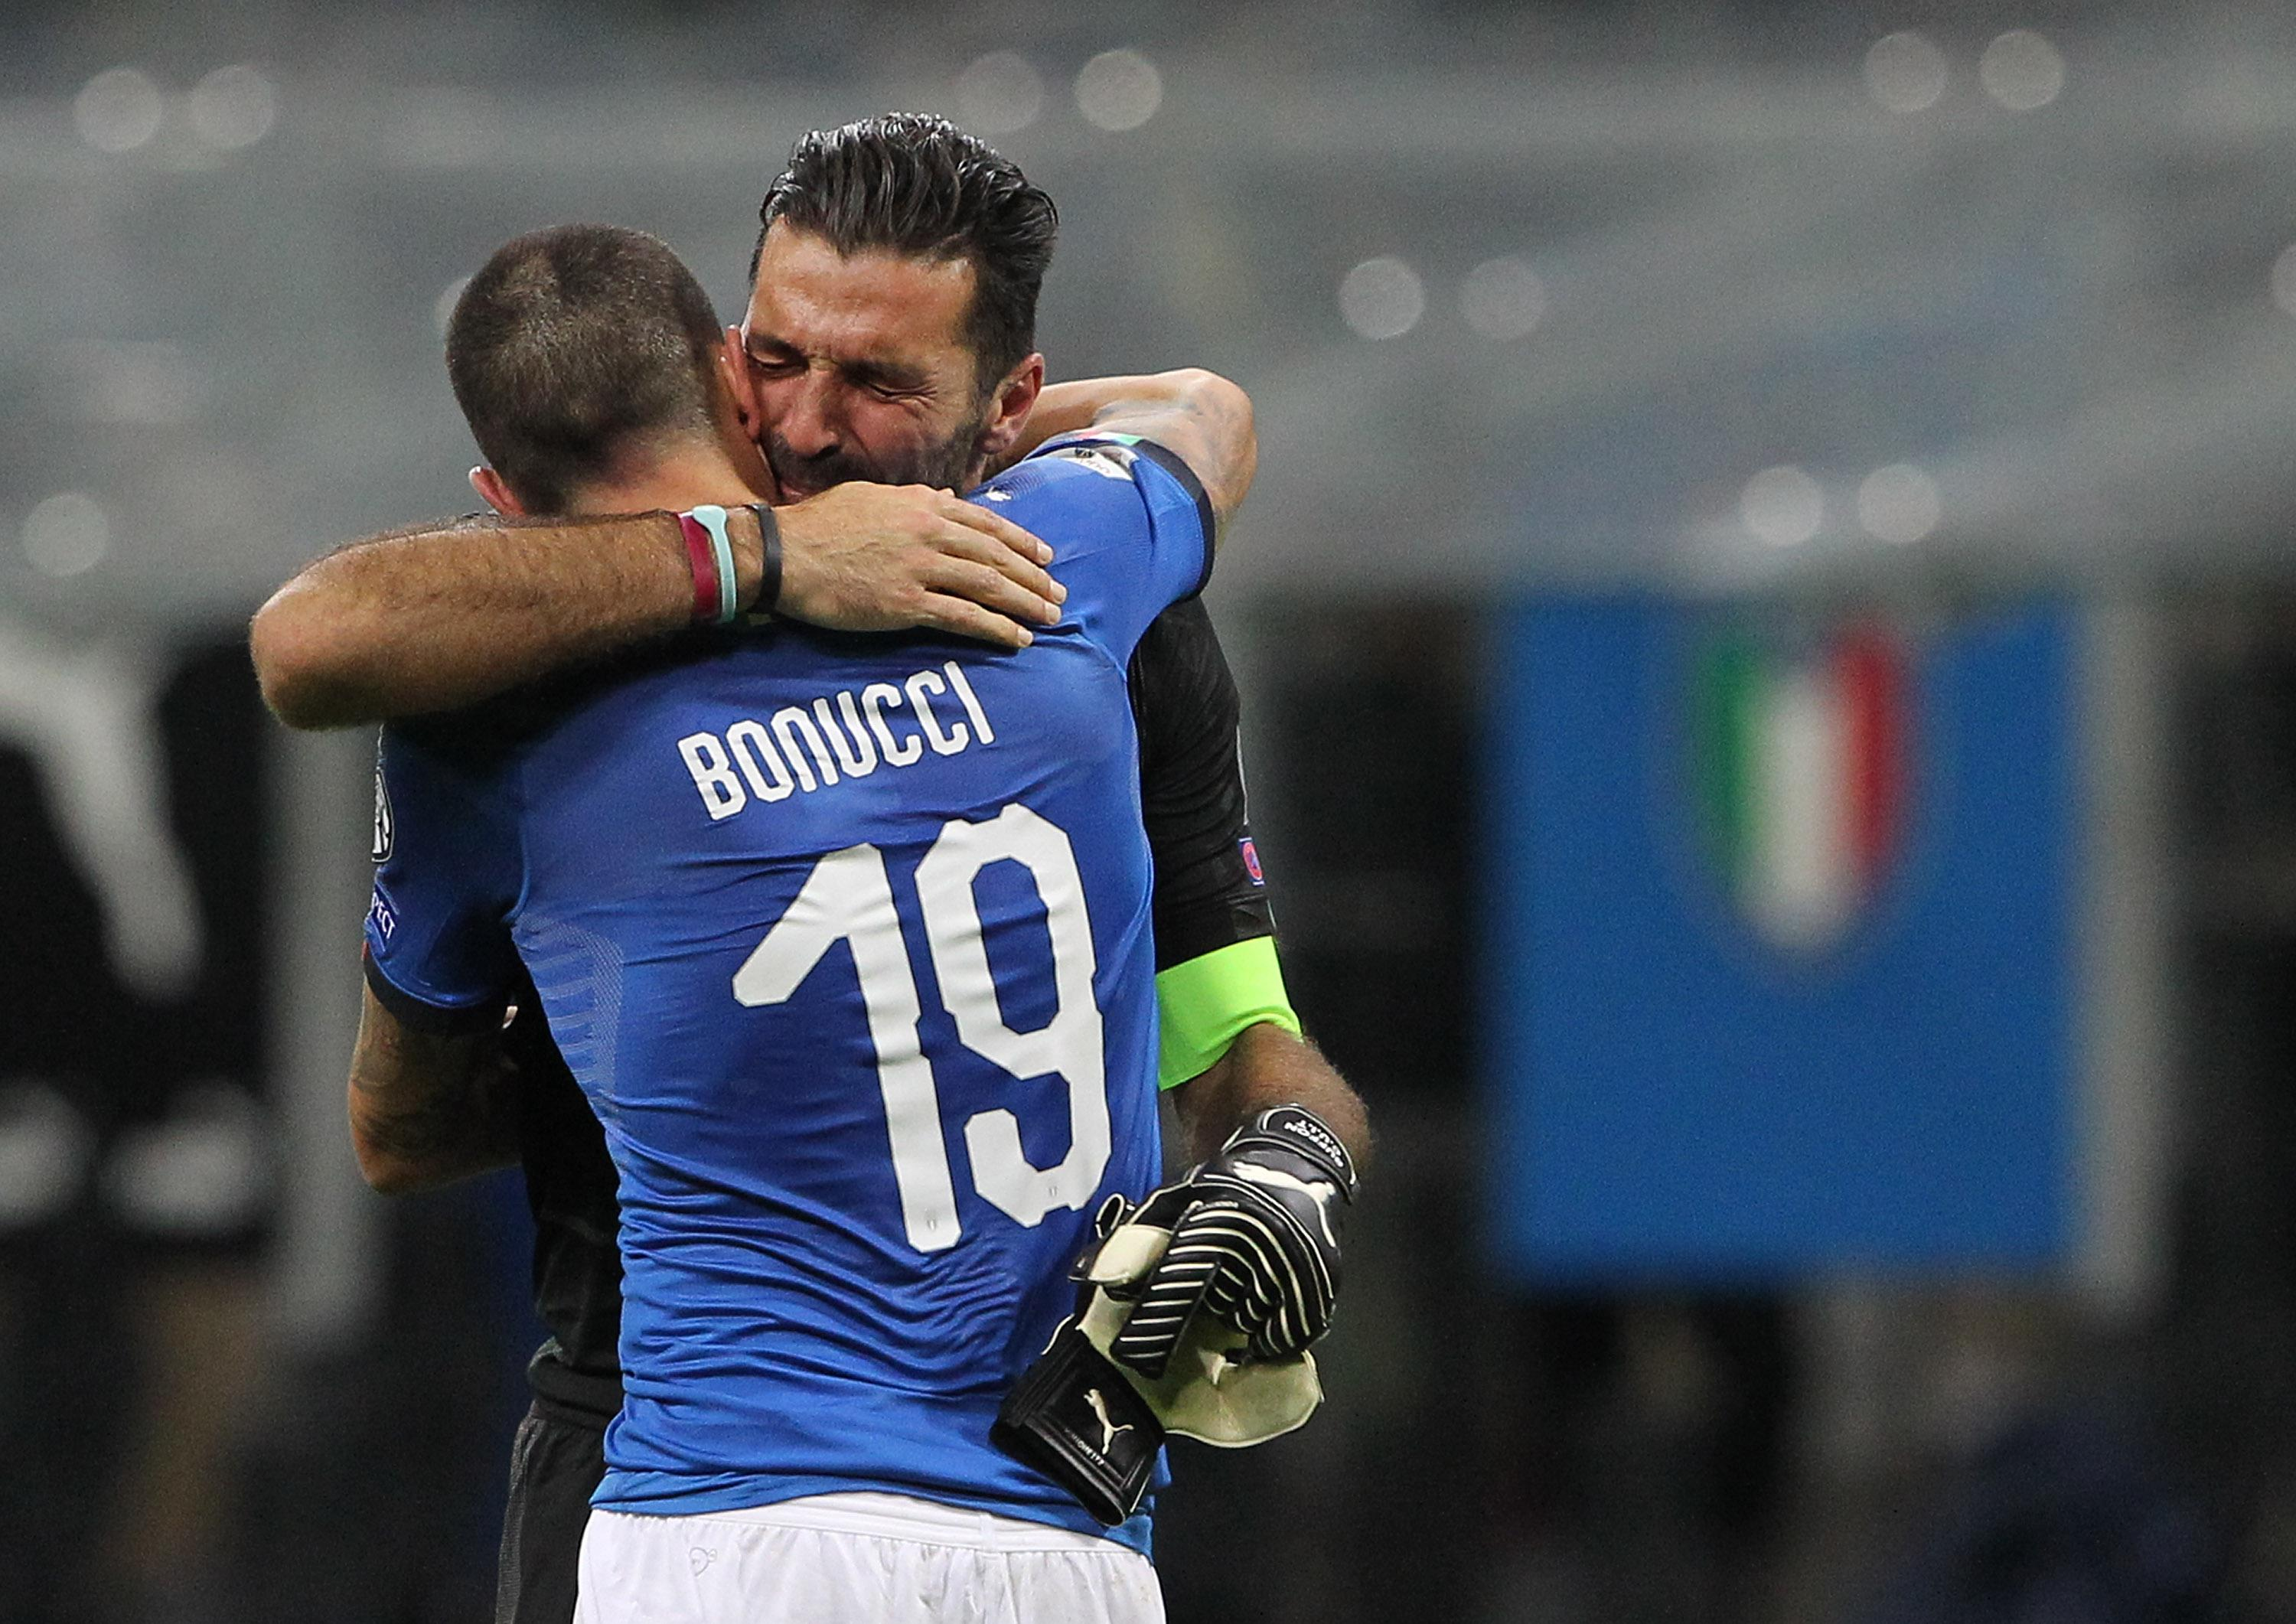 They suffered shared heartache when Italy failed to reach this summer's World Cup